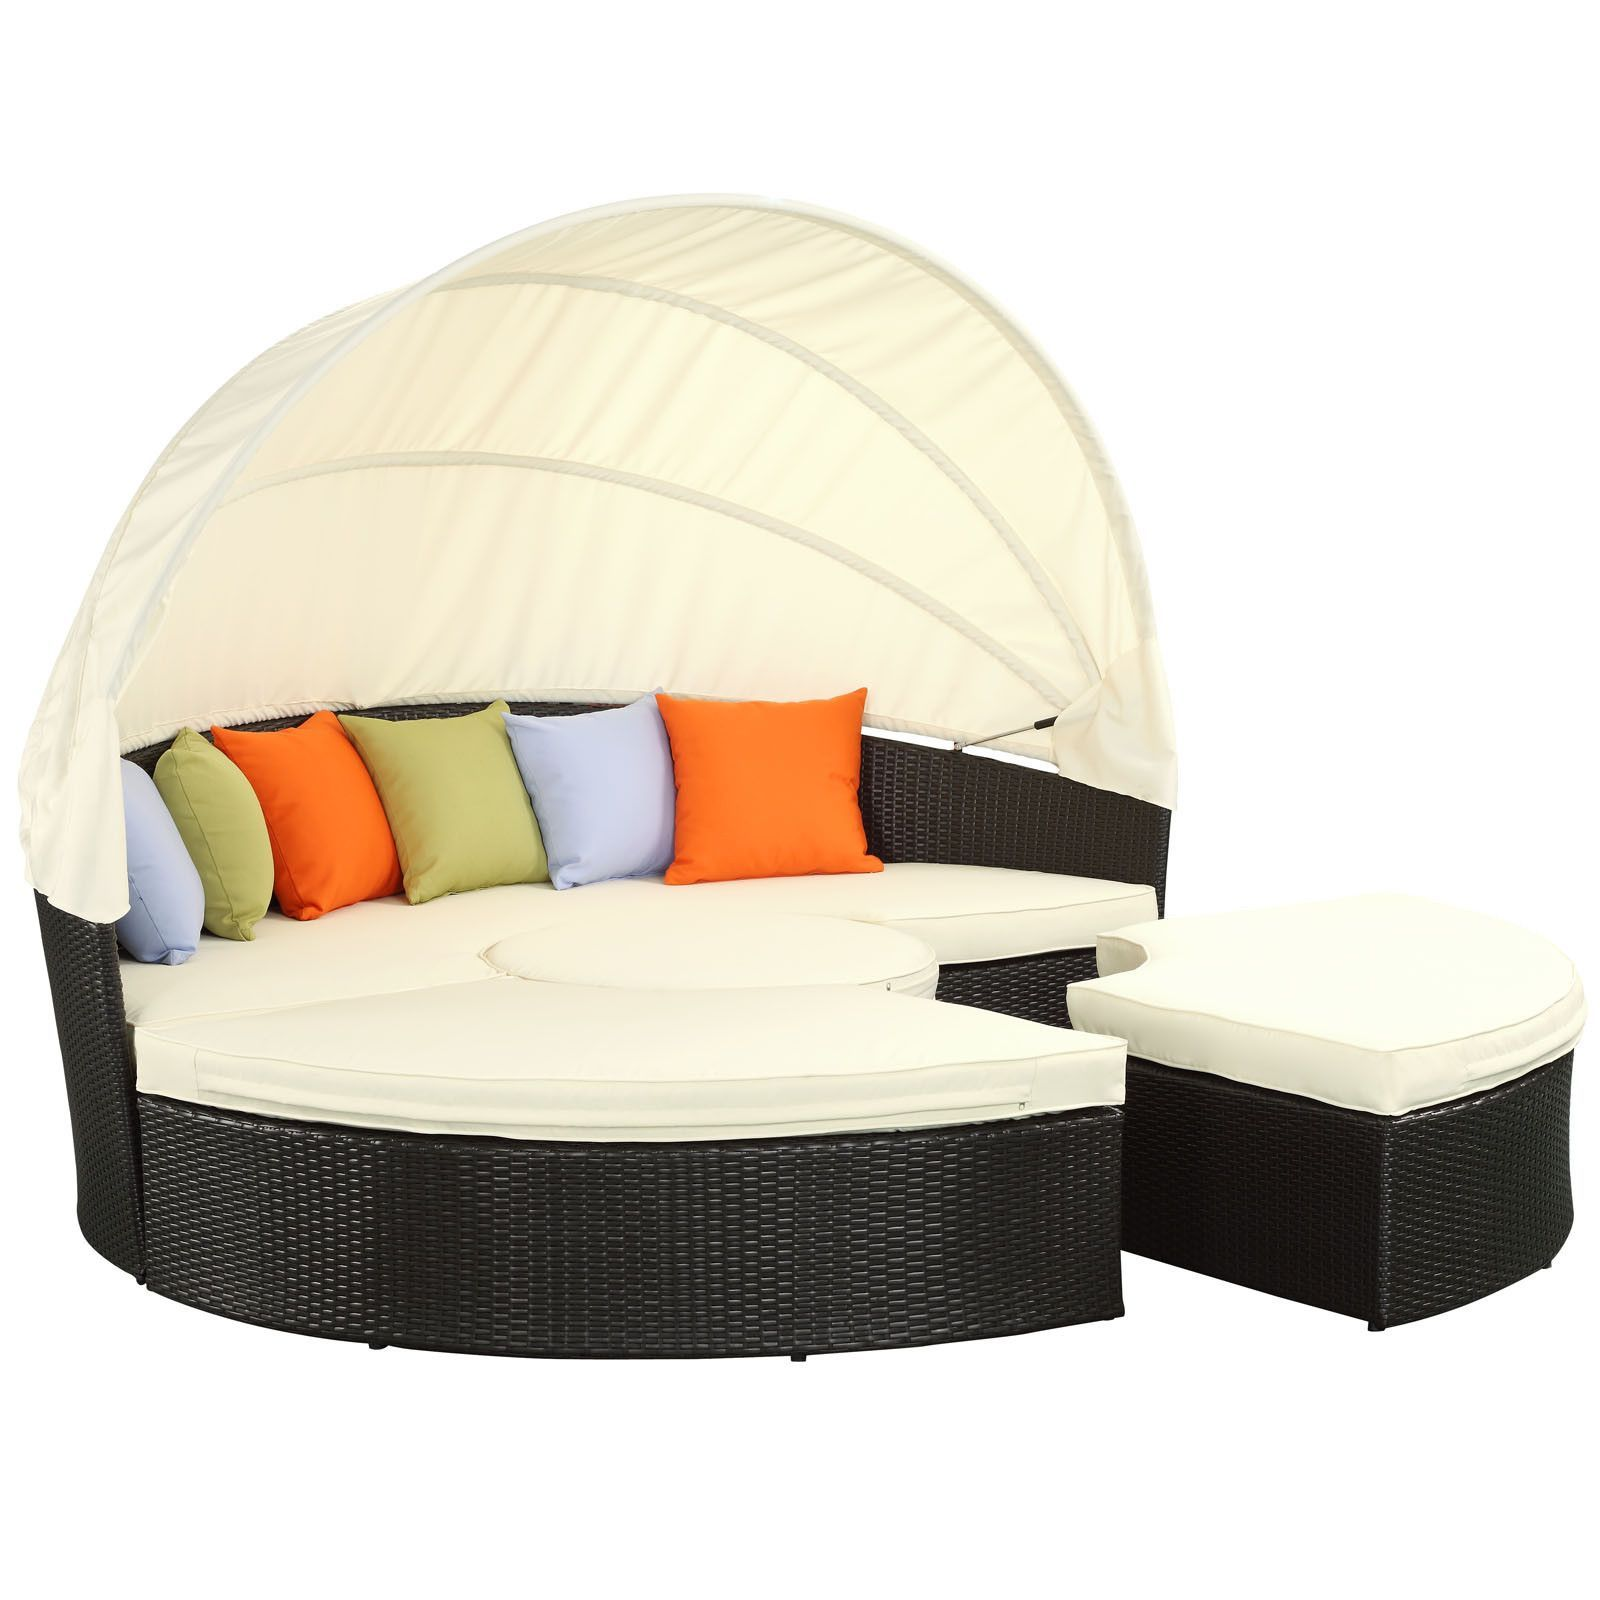 Modway Quest Canopy Outdoor Patio Daybed